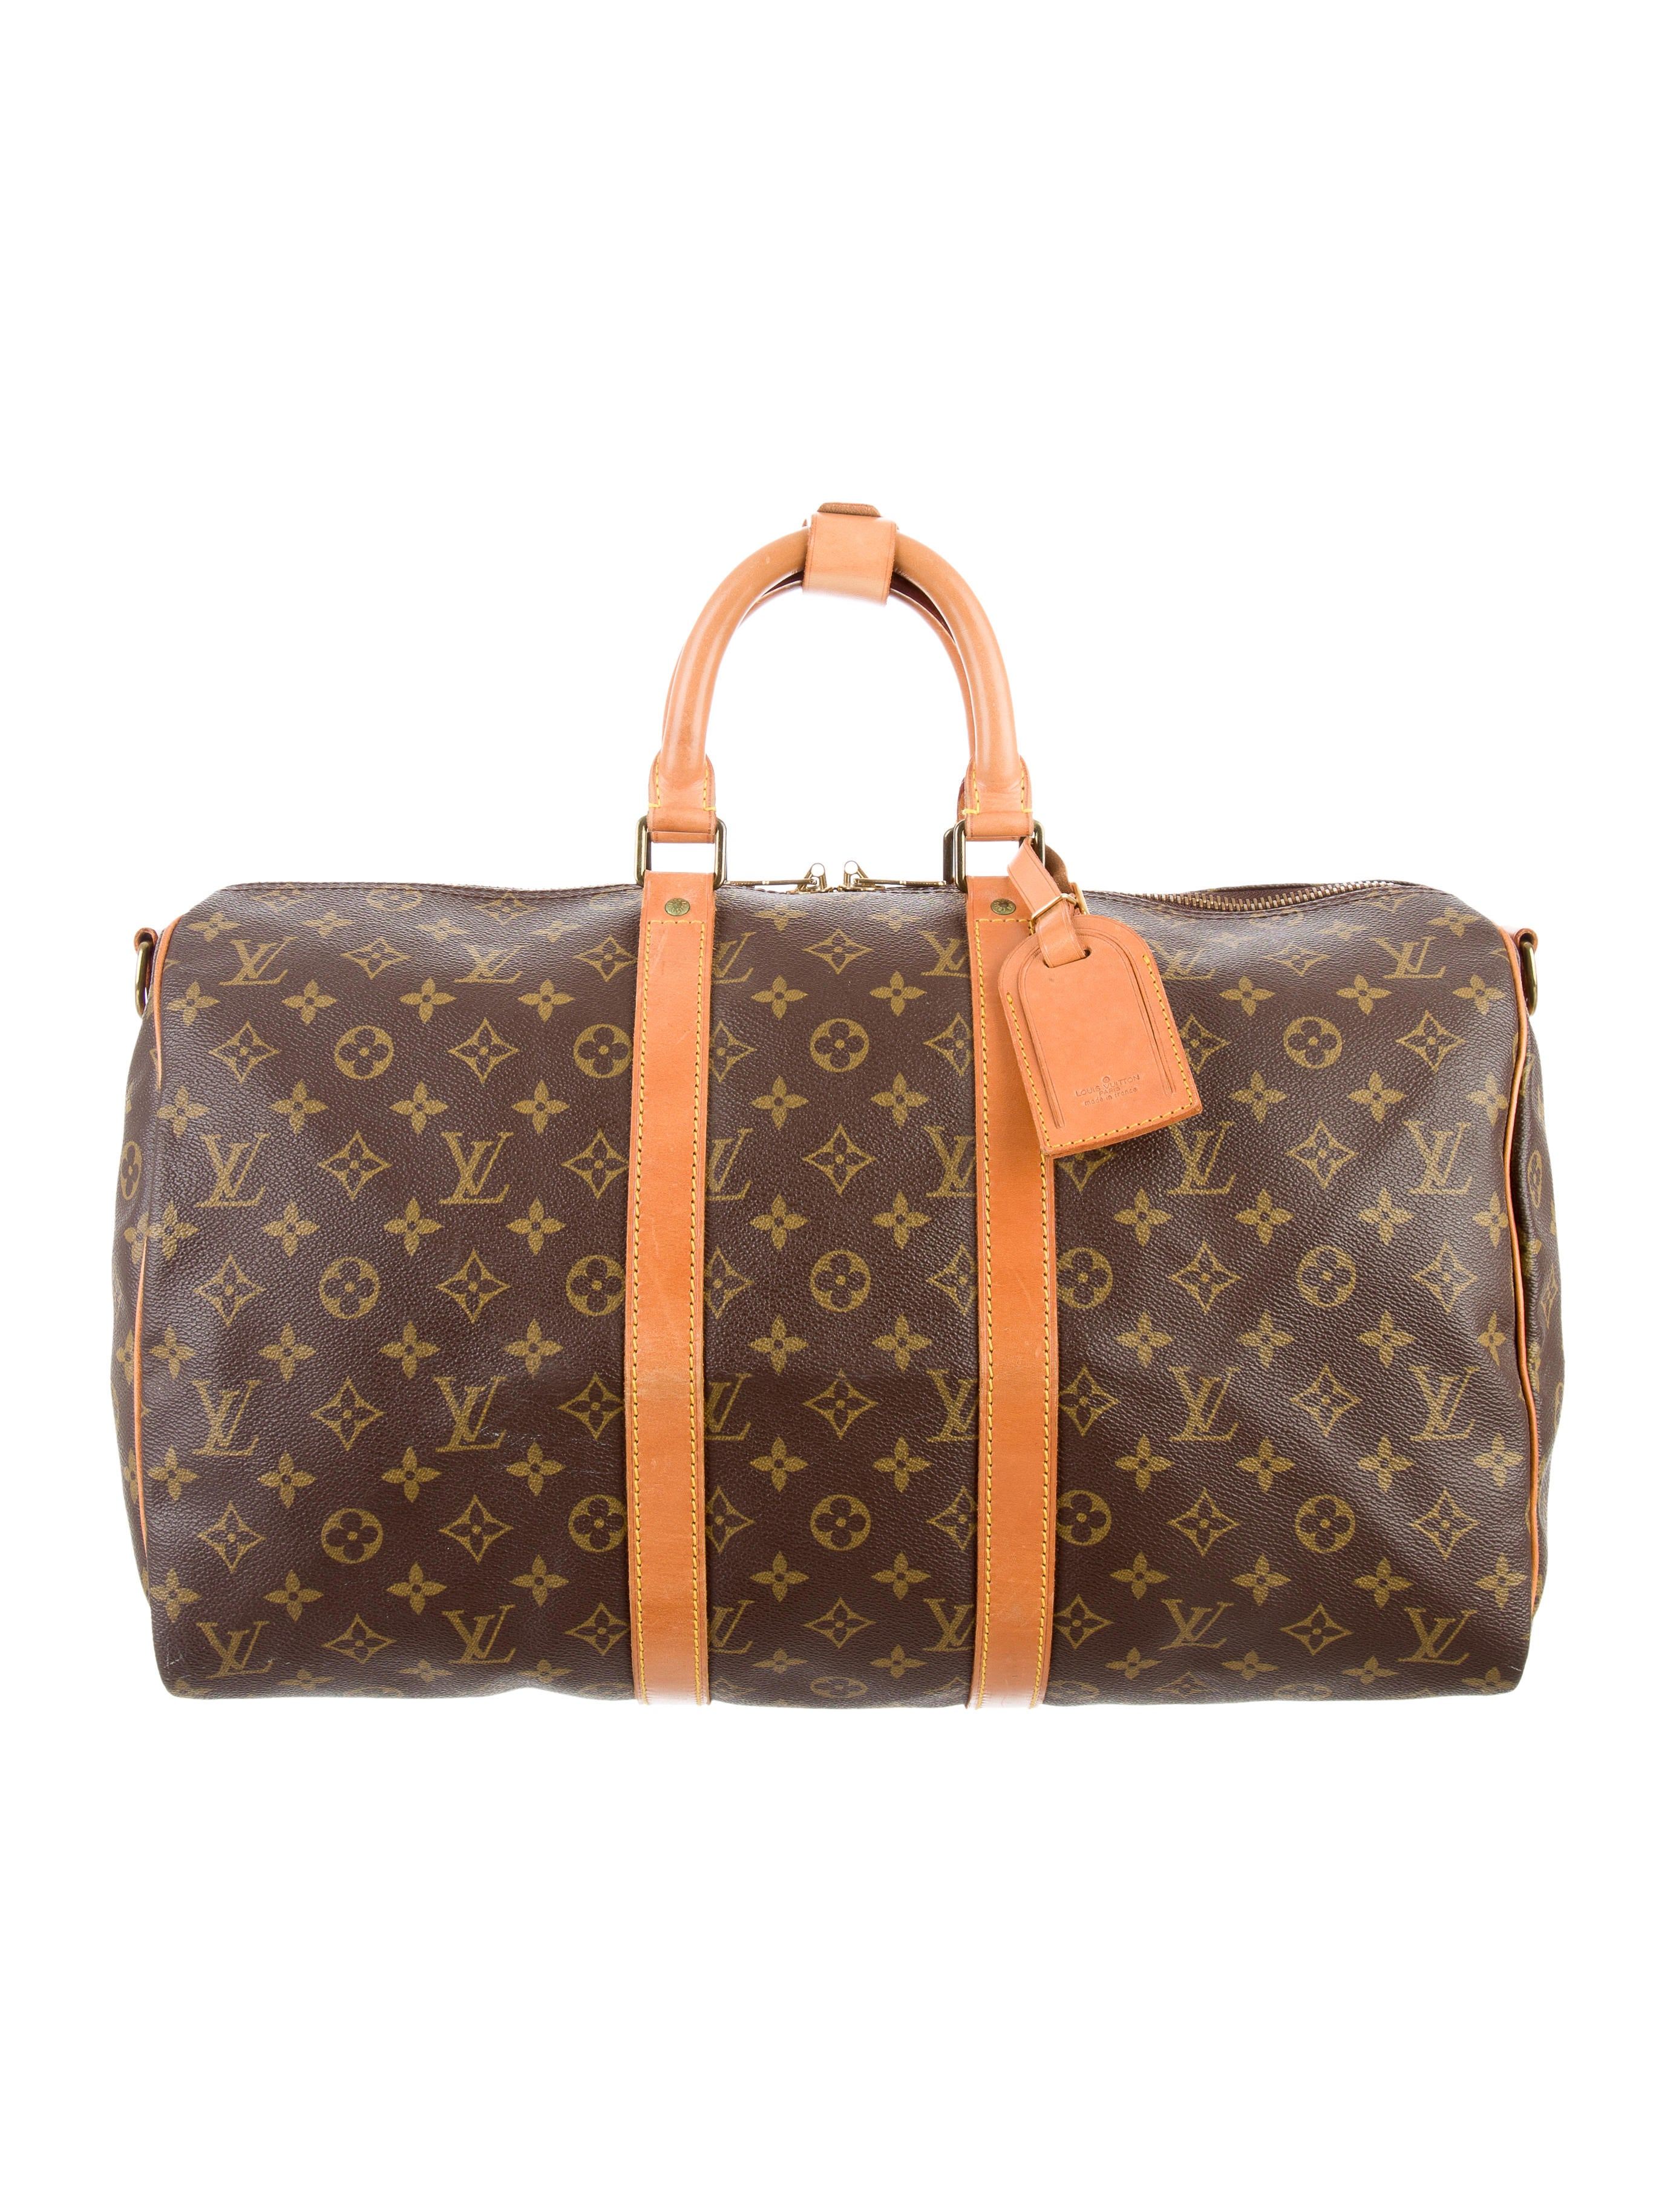 louis vuitton monogram keepall bandouli re 45 handbags lou122104 the realreal. Black Bedroom Furniture Sets. Home Design Ideas